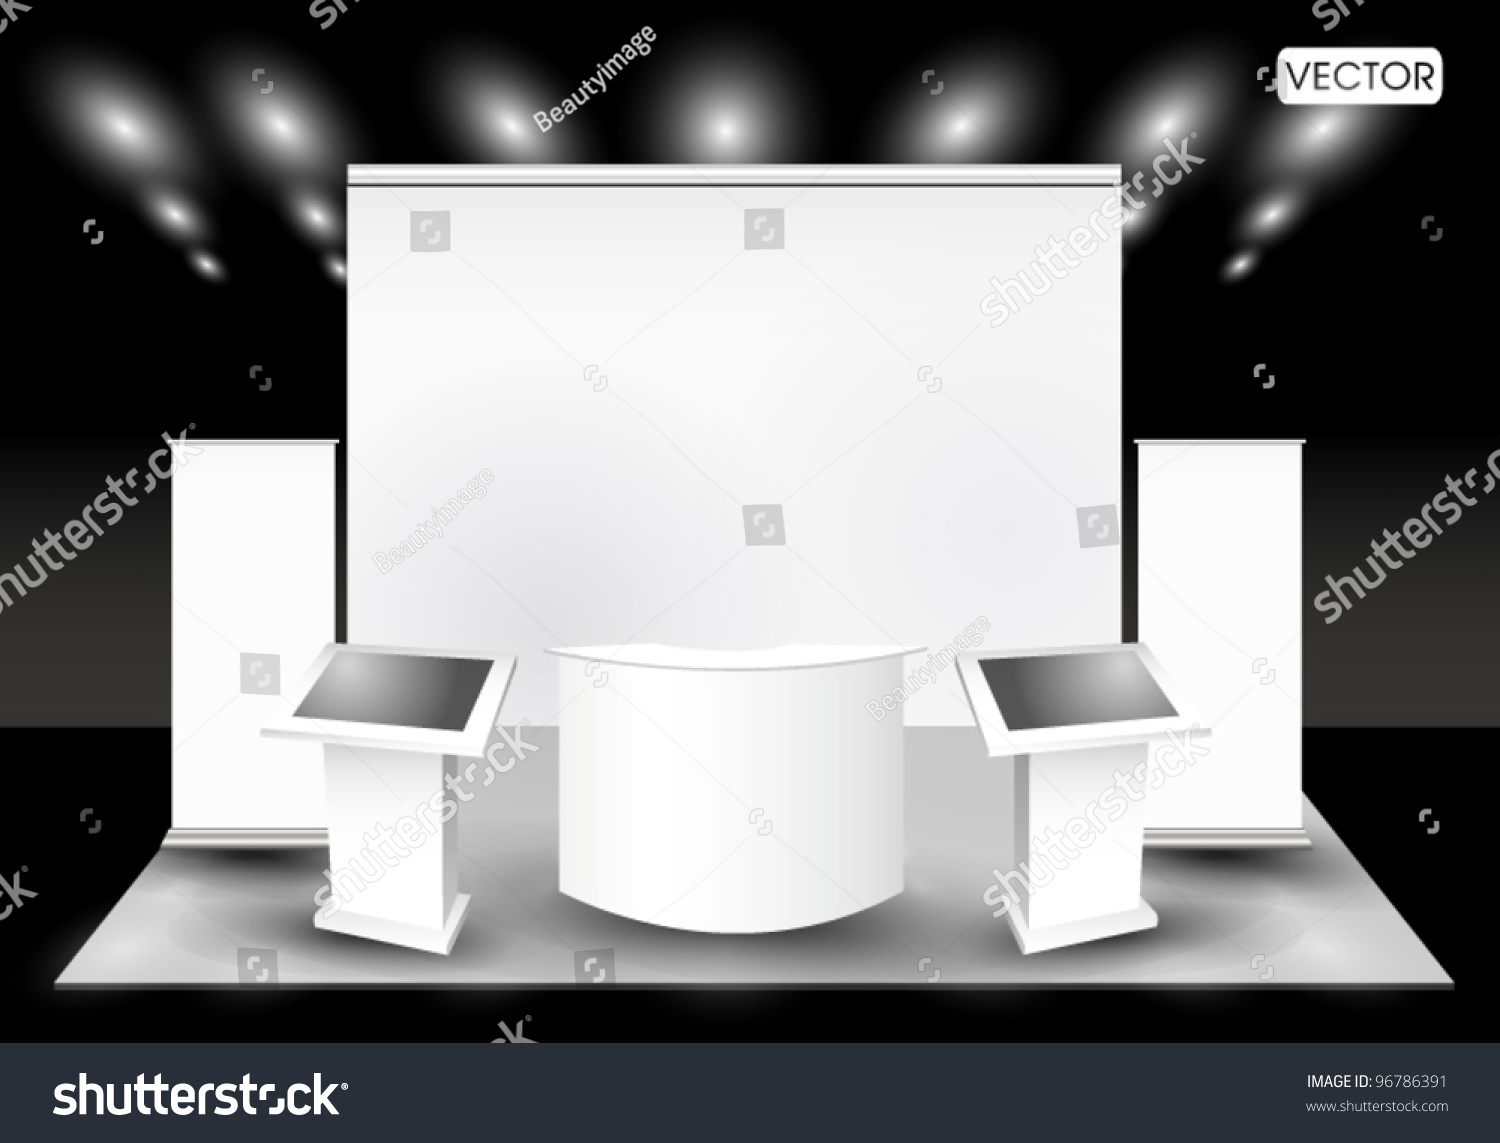 Simple Exhibition Stand Vector : Blank trade exhibition stand lcd monitor stock vector